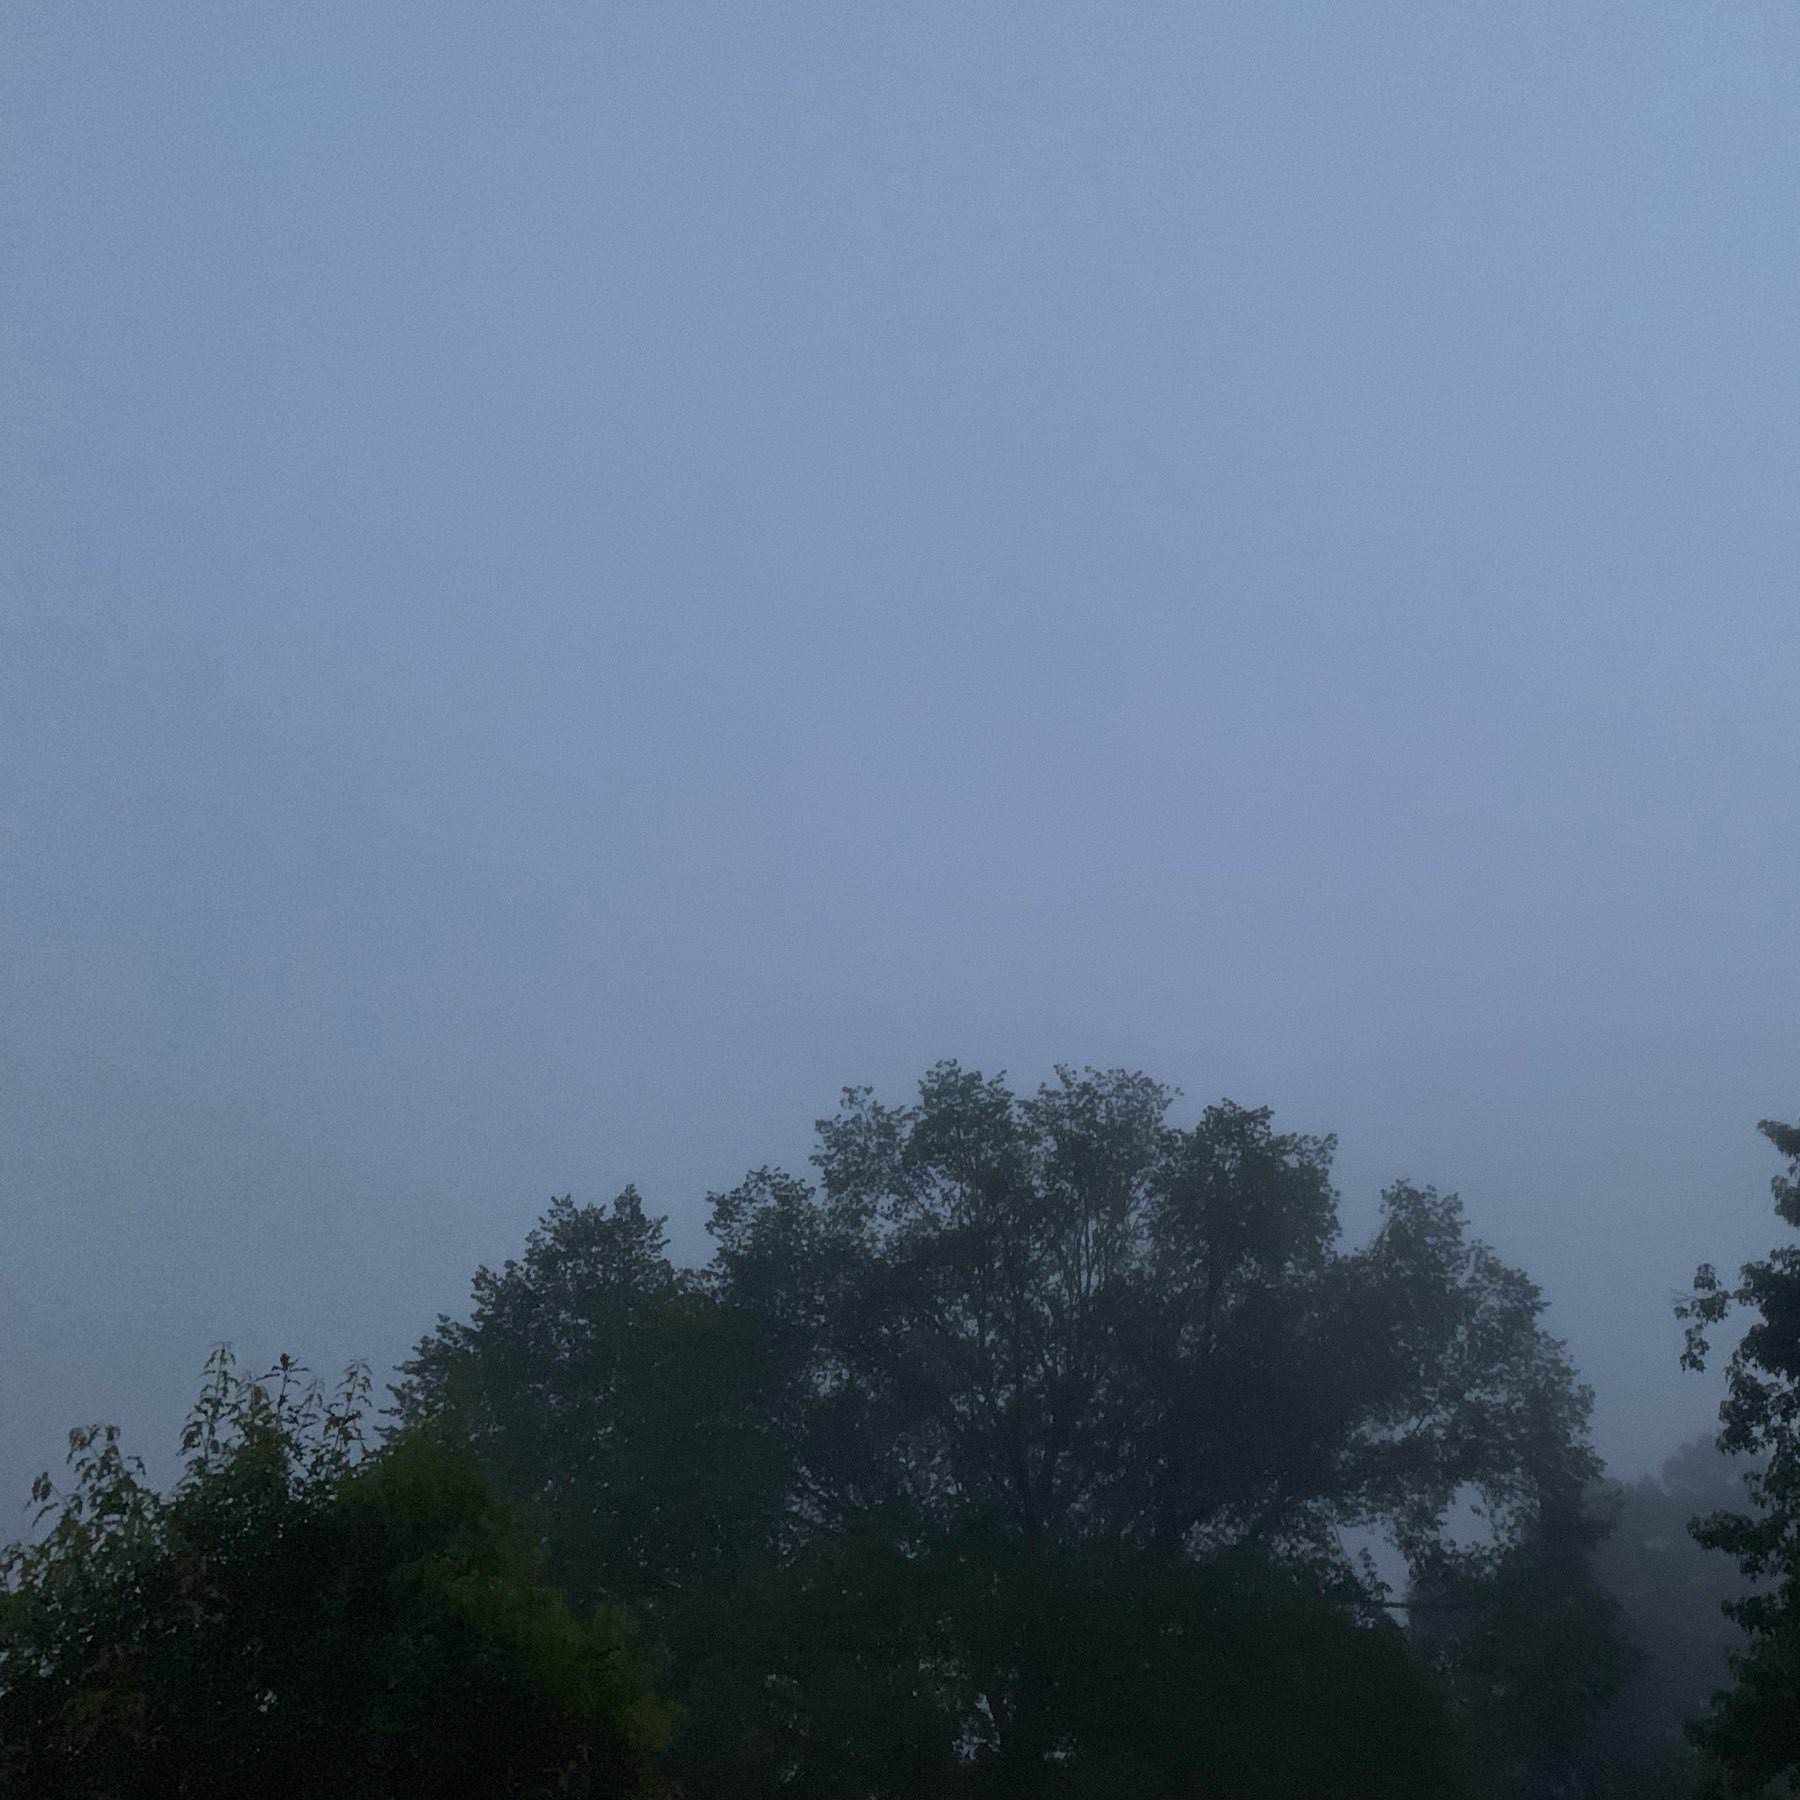 Morning fog obscures tree tops